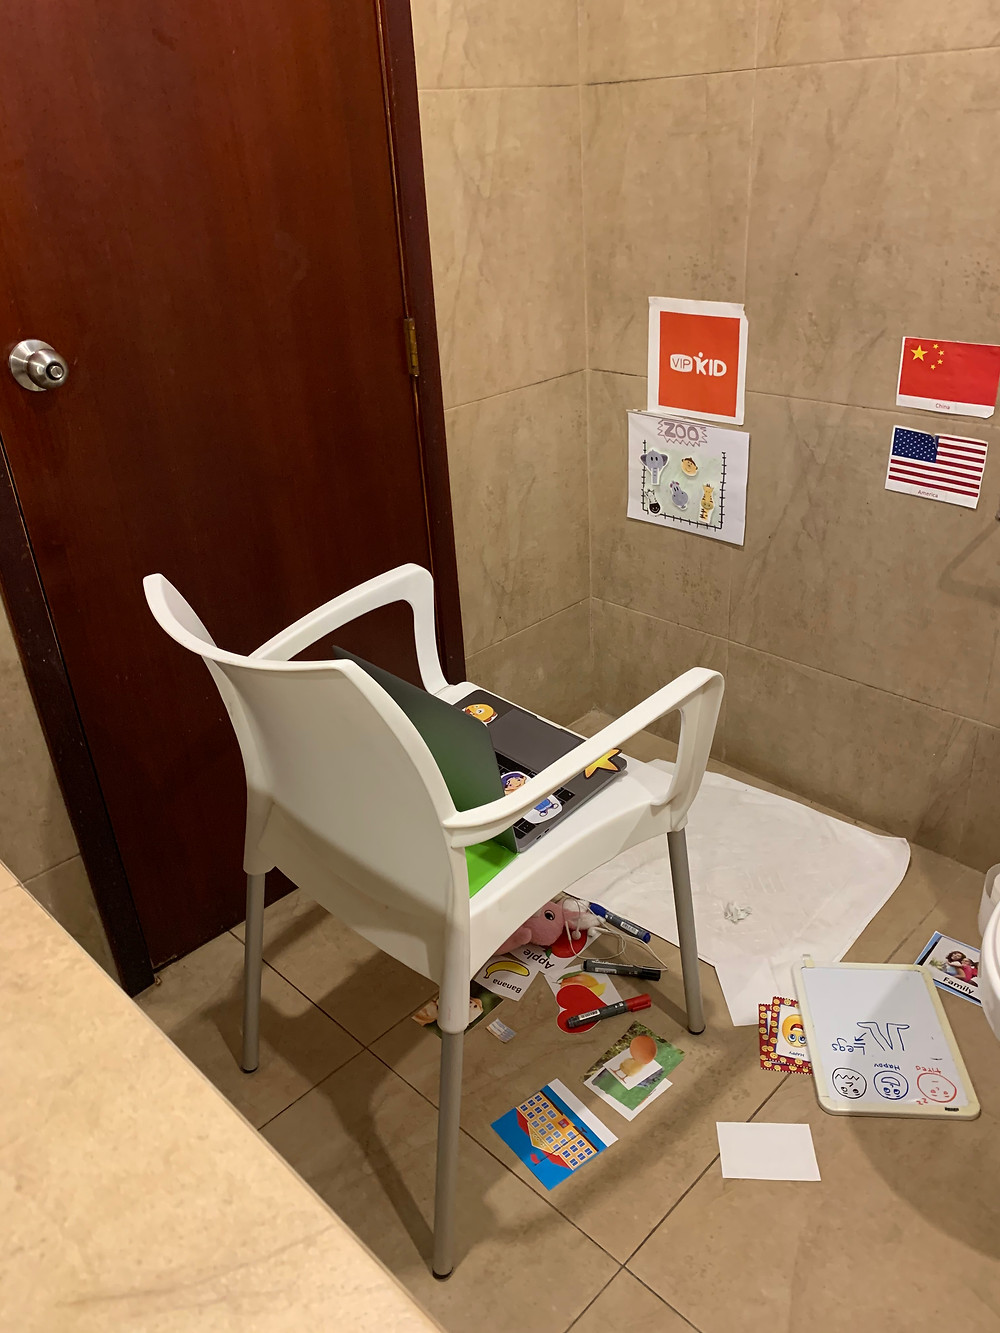 Image of a corner of a small room. A white chair sits in front of a doormat which a computer on it. The wall in front of the chair has 4 wall decorations; a chinese and american flag, a Vipkid sign and an image of animals at the zoo. Surrounding the chair on the floor are an assortment of English flashcards.